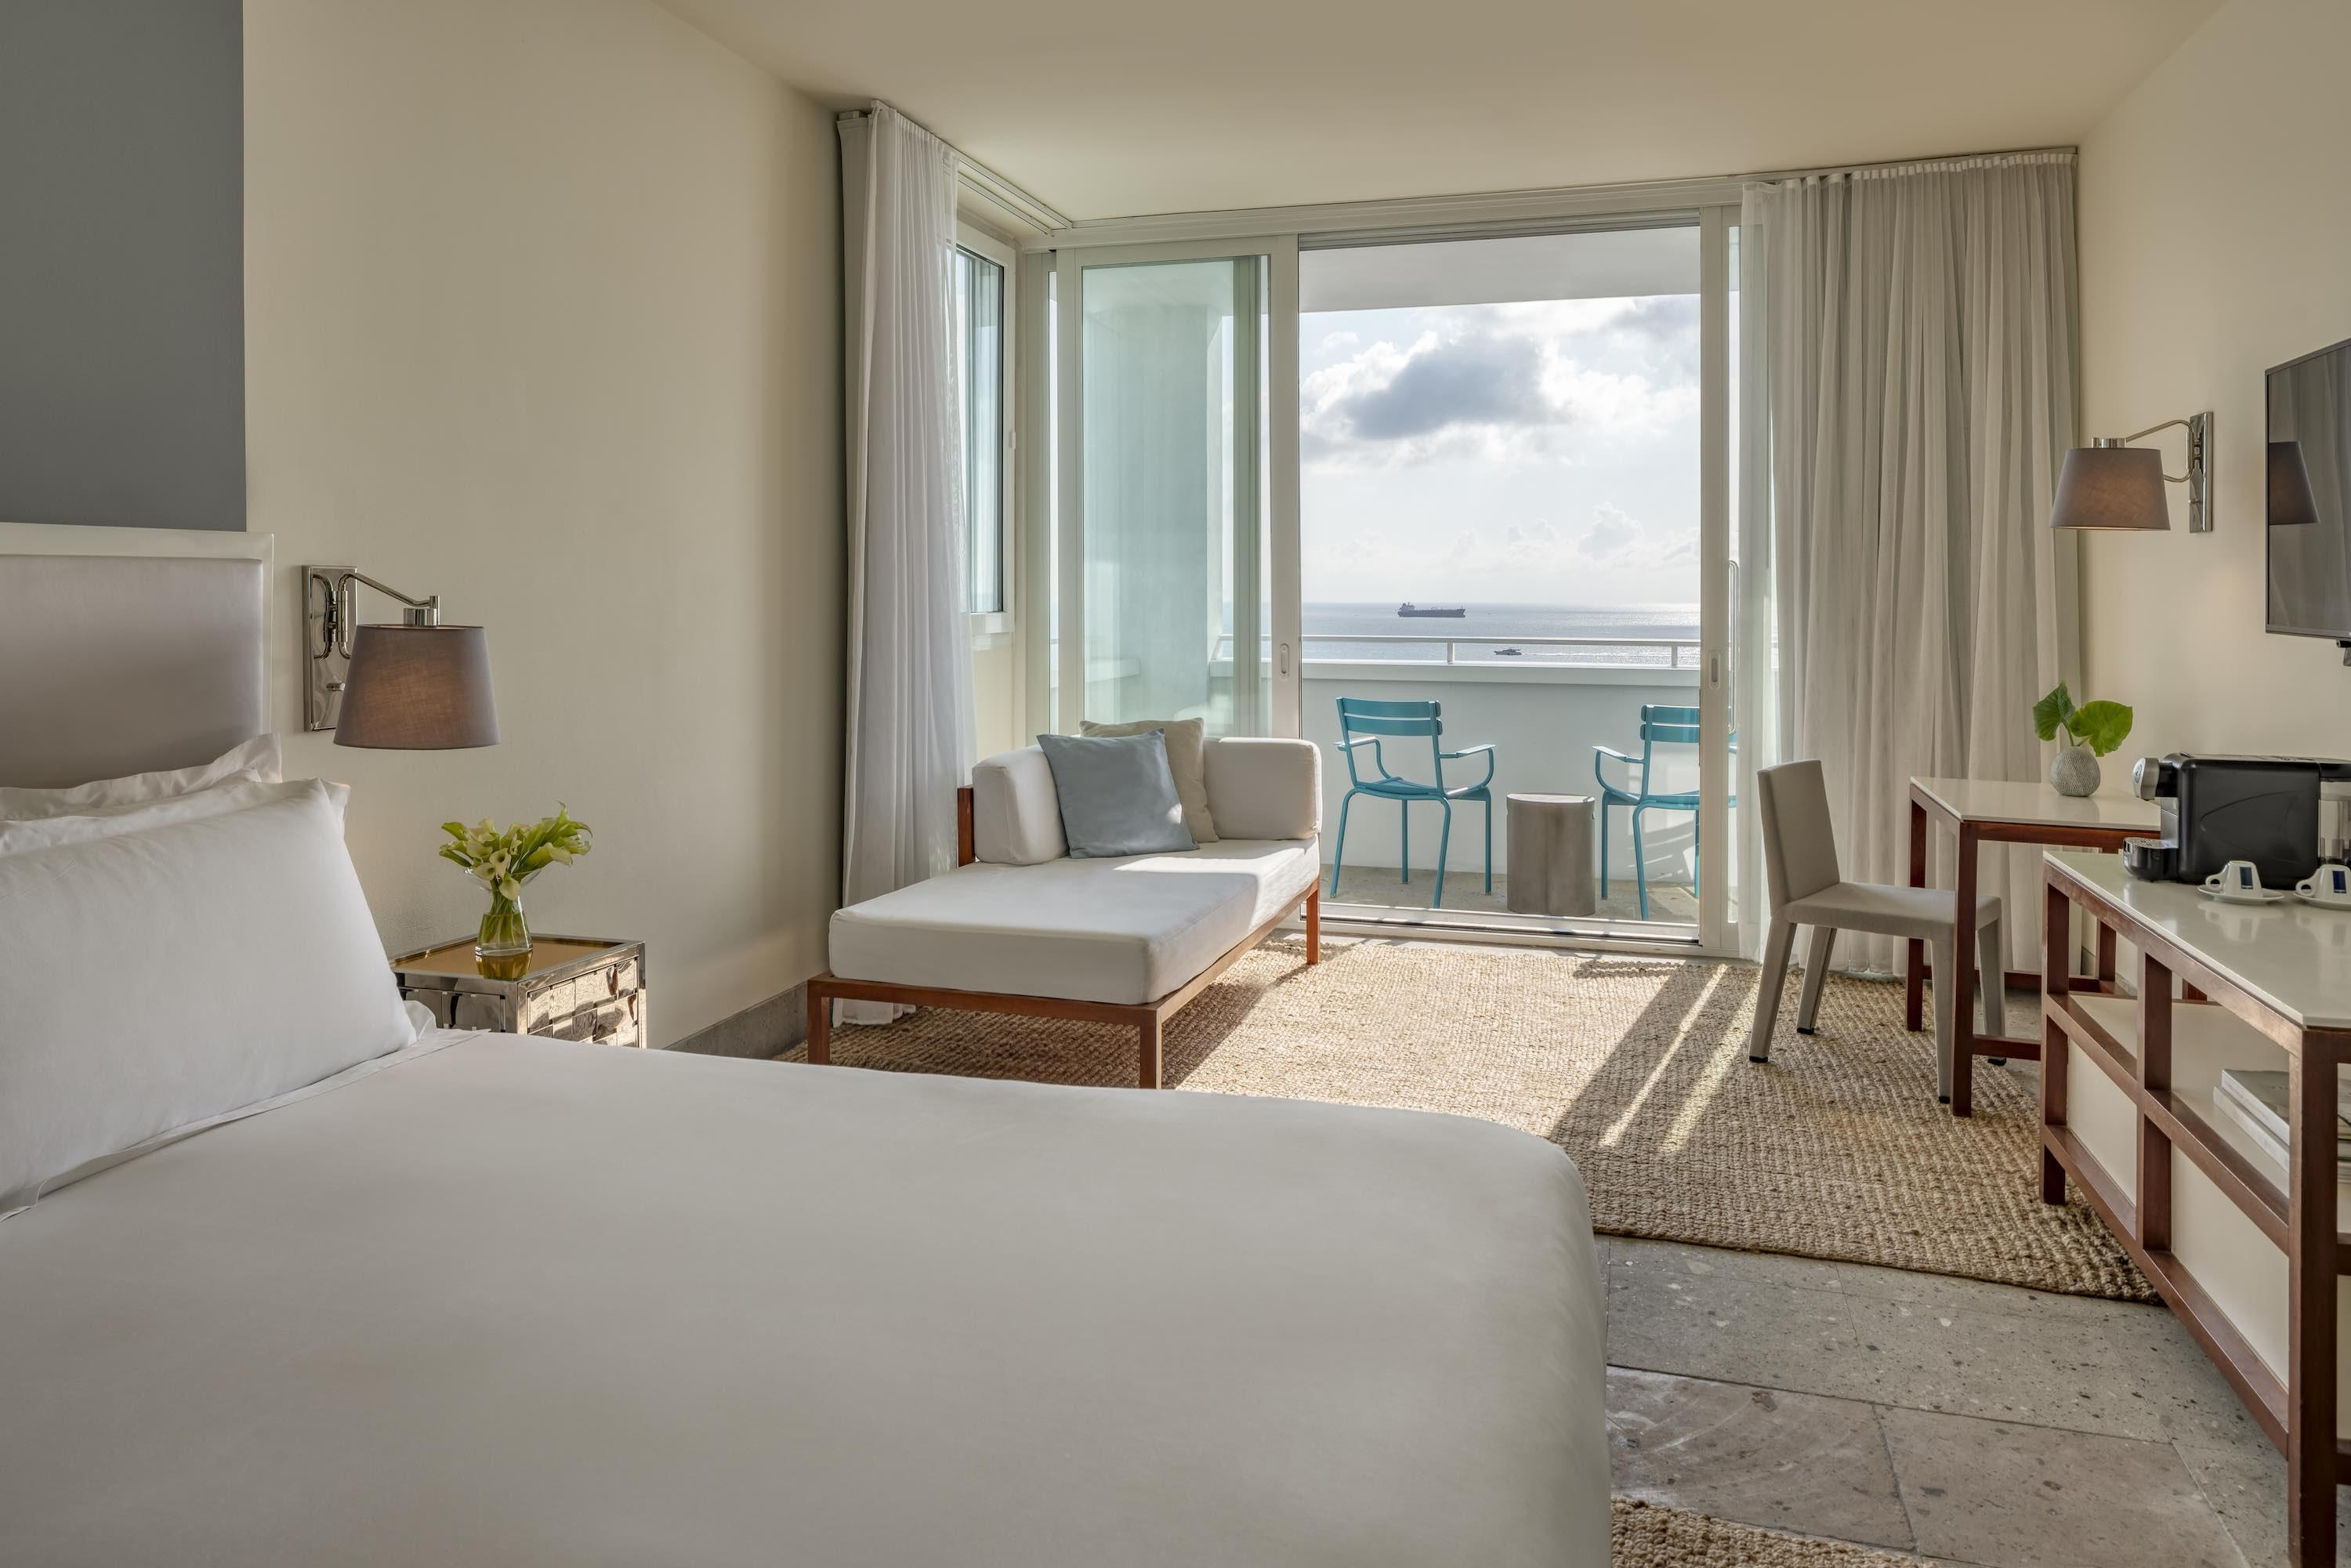 hotel room with bed and chaise lounge overlooking the ocean